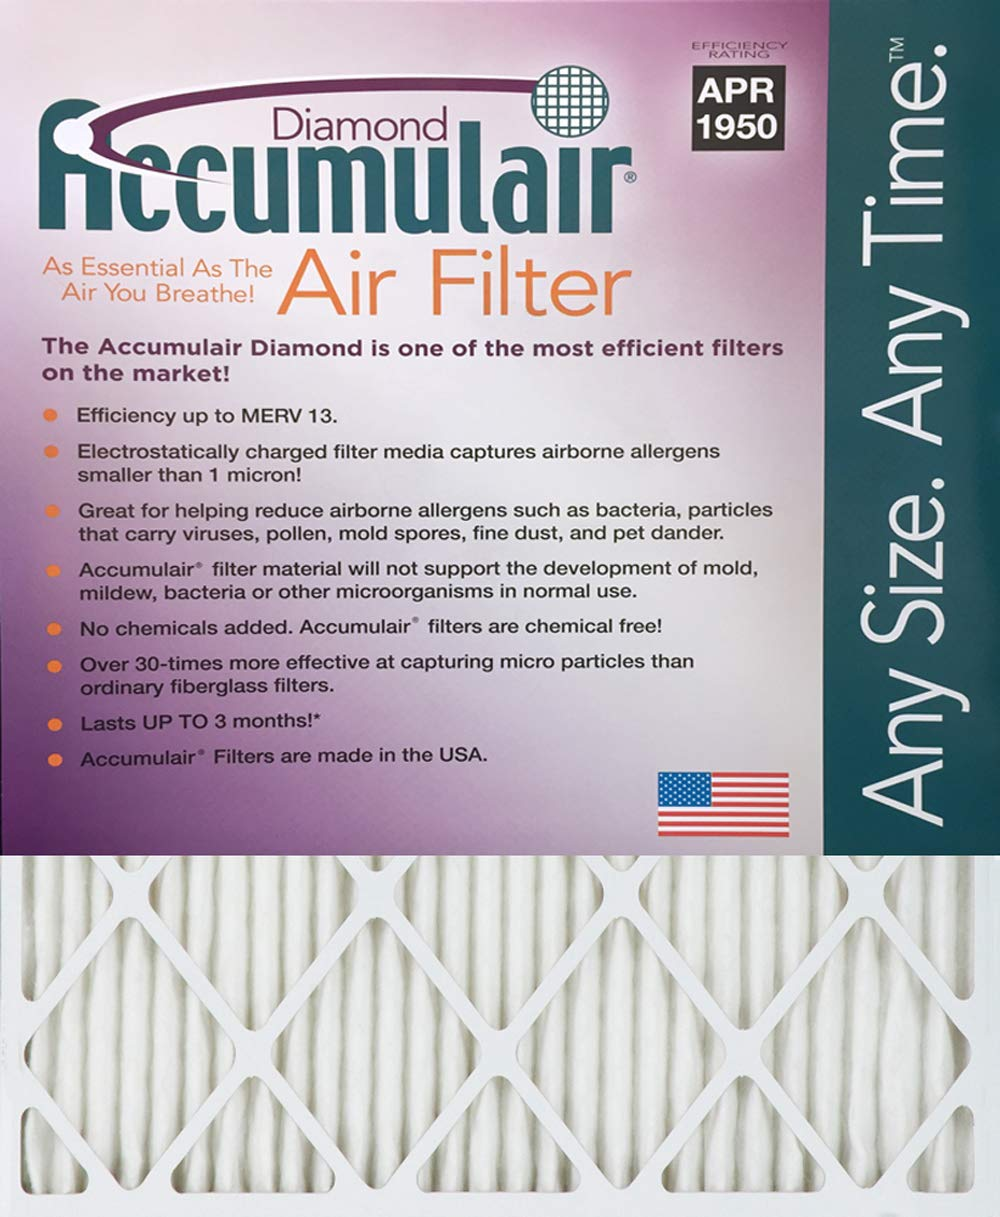 Accumulair Diamond 16x30x1 (15.5x29.5) MERV 13 Air Filter/Furnace Filter by Accumulair